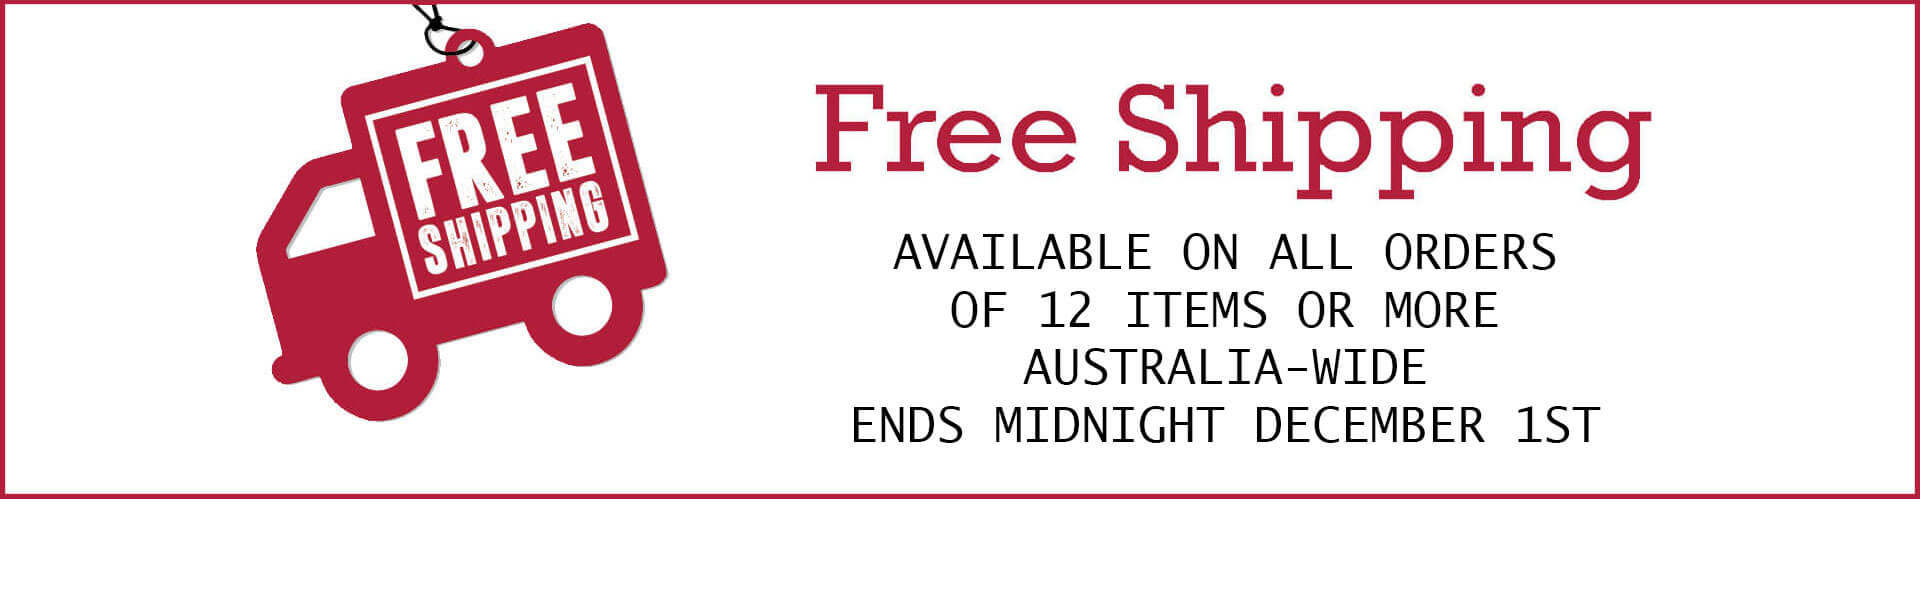 Free Shipping available until Midnight December 1st 2019 at Wine Sellers Direct for orders of 12 items or more.